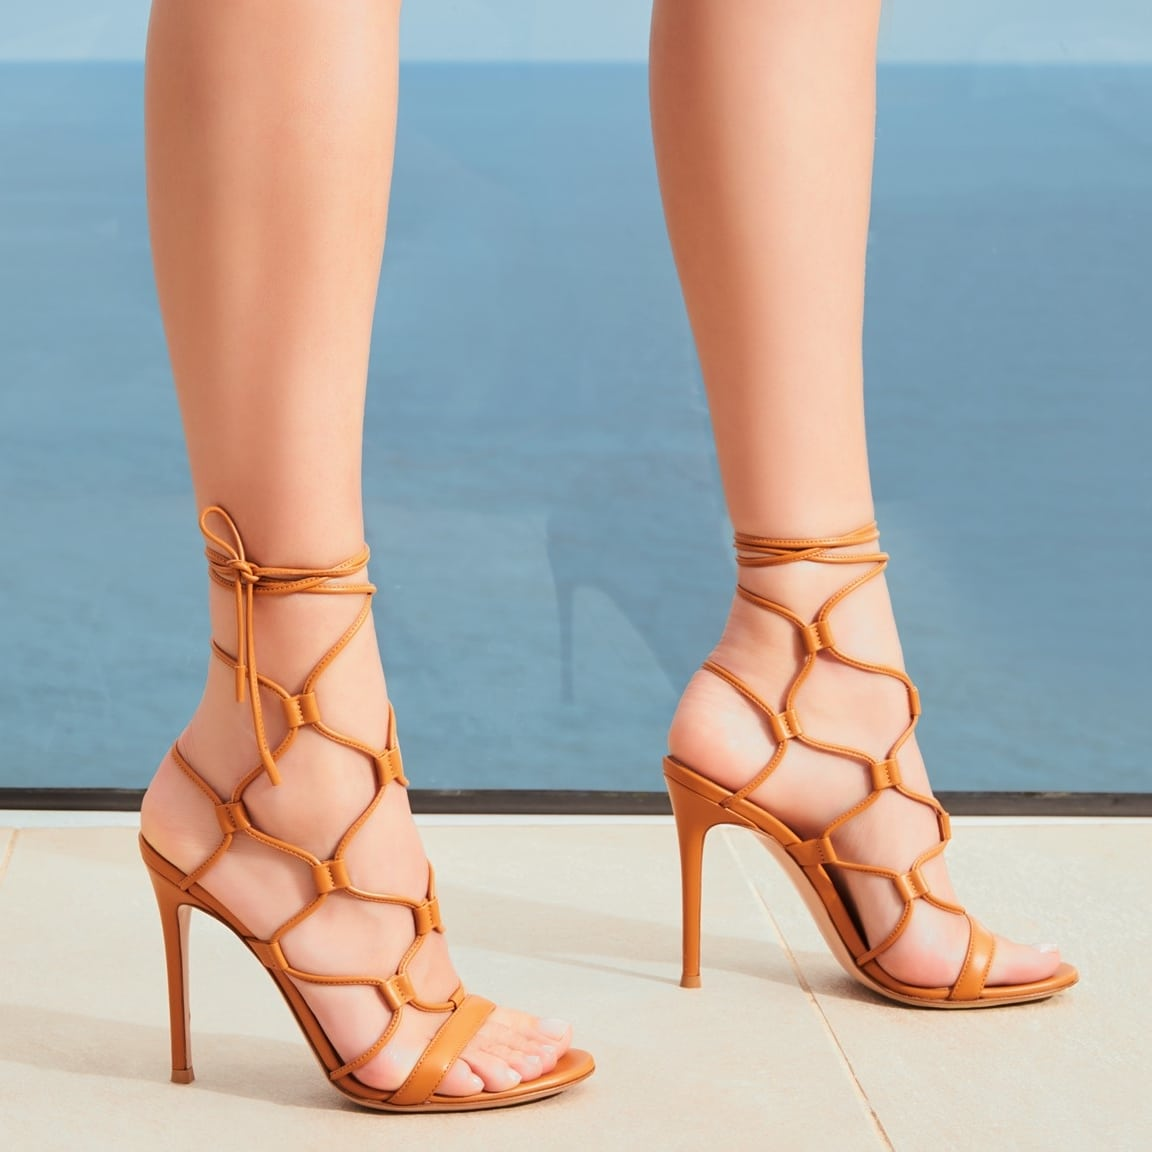 Gianvito Rossi's Giza sandals trace elegant curves along the arches of your feet